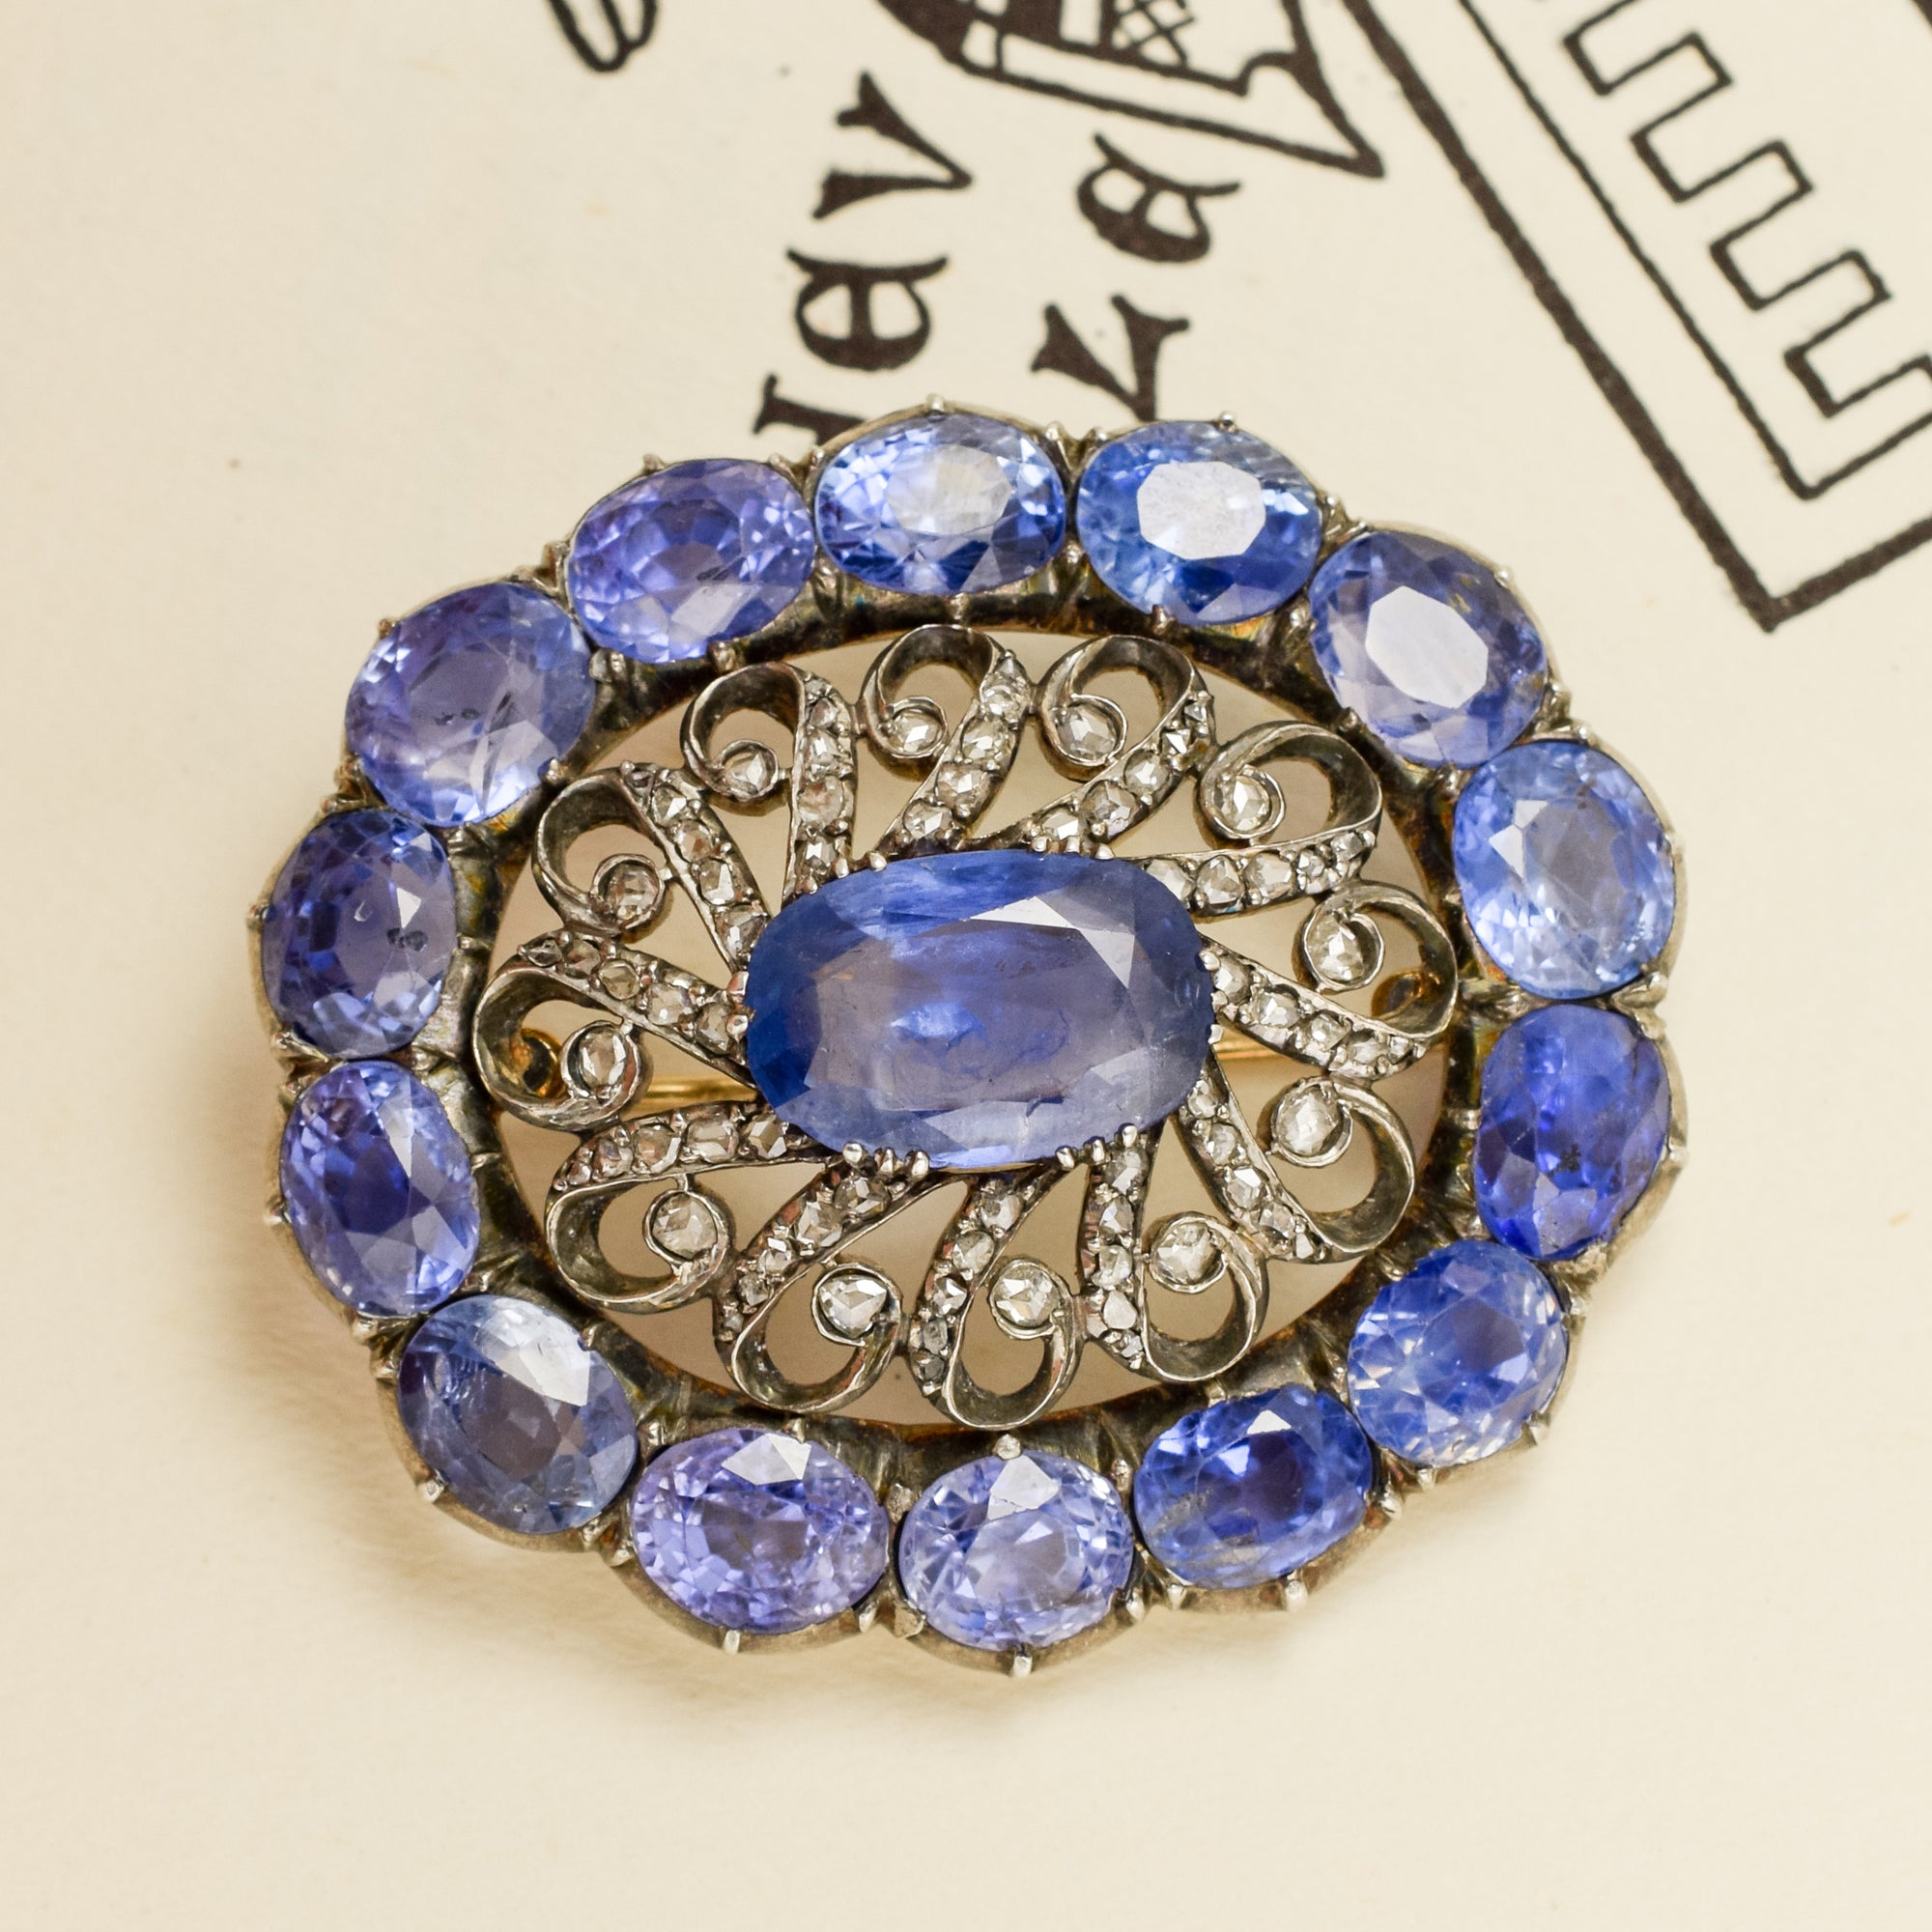 bar exeter and diamond pin product estate brooch sapphire edwardian jewelers platinum